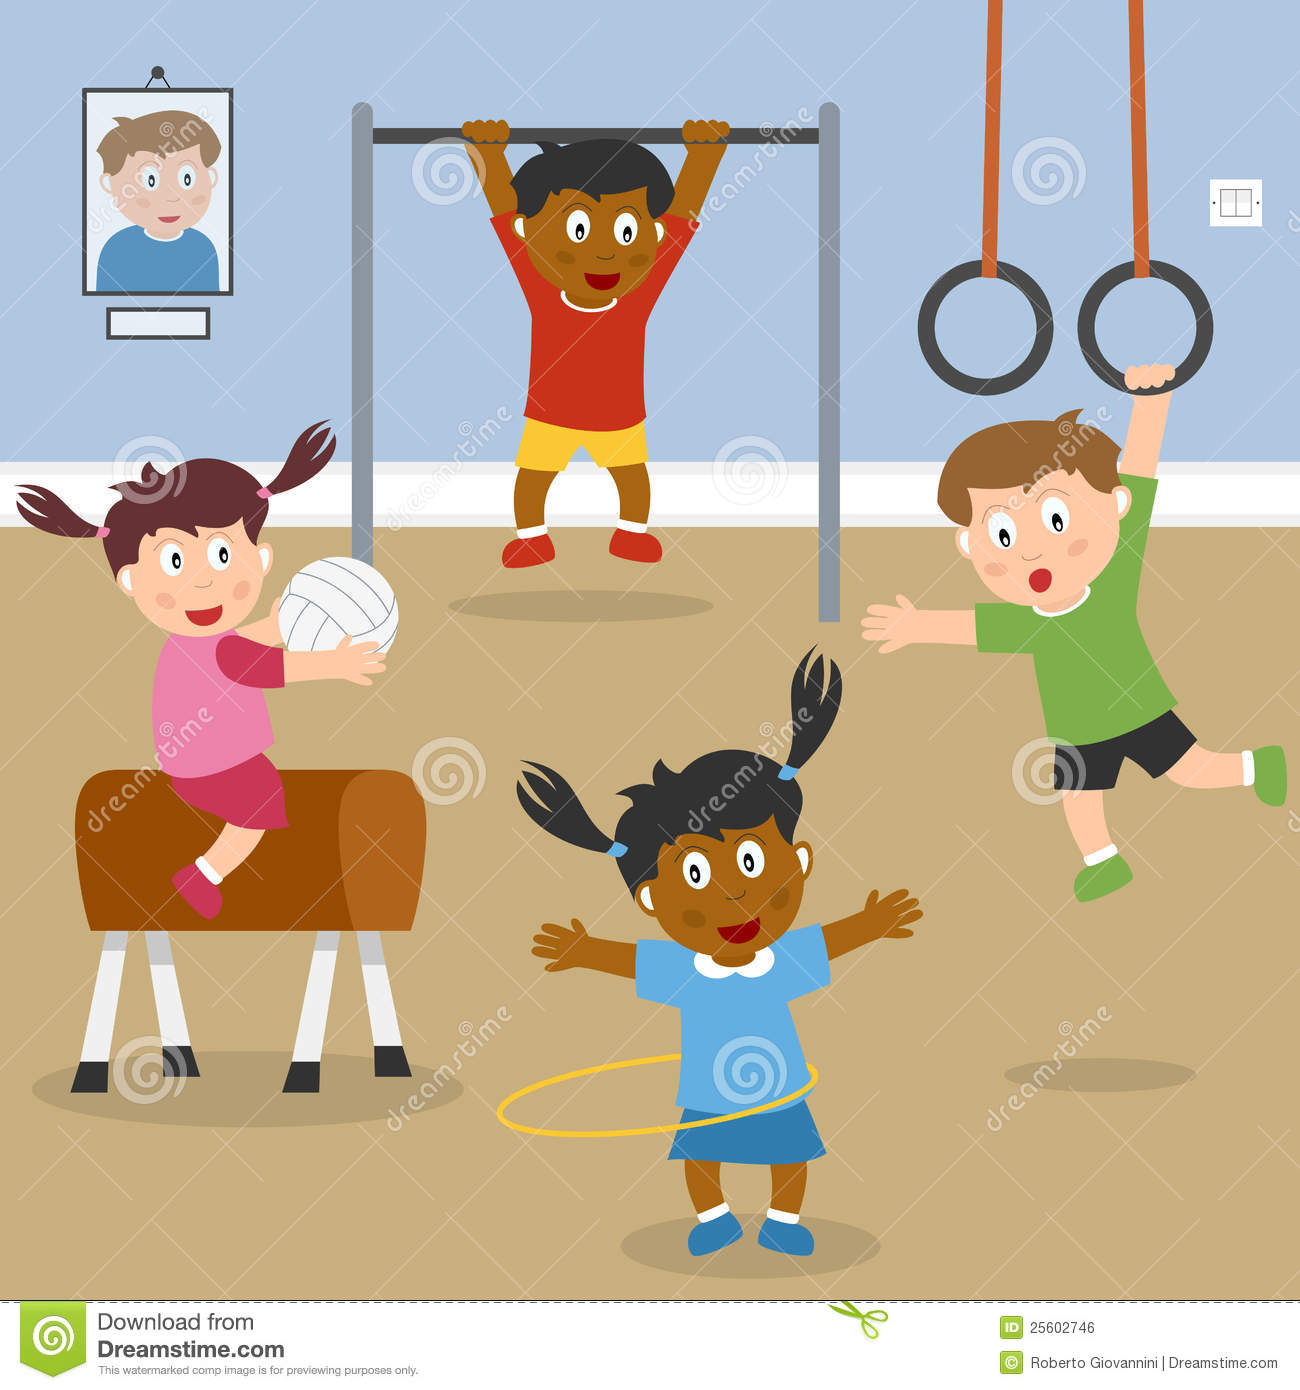 kids playing in the school gym | clipart panda - free clipart images